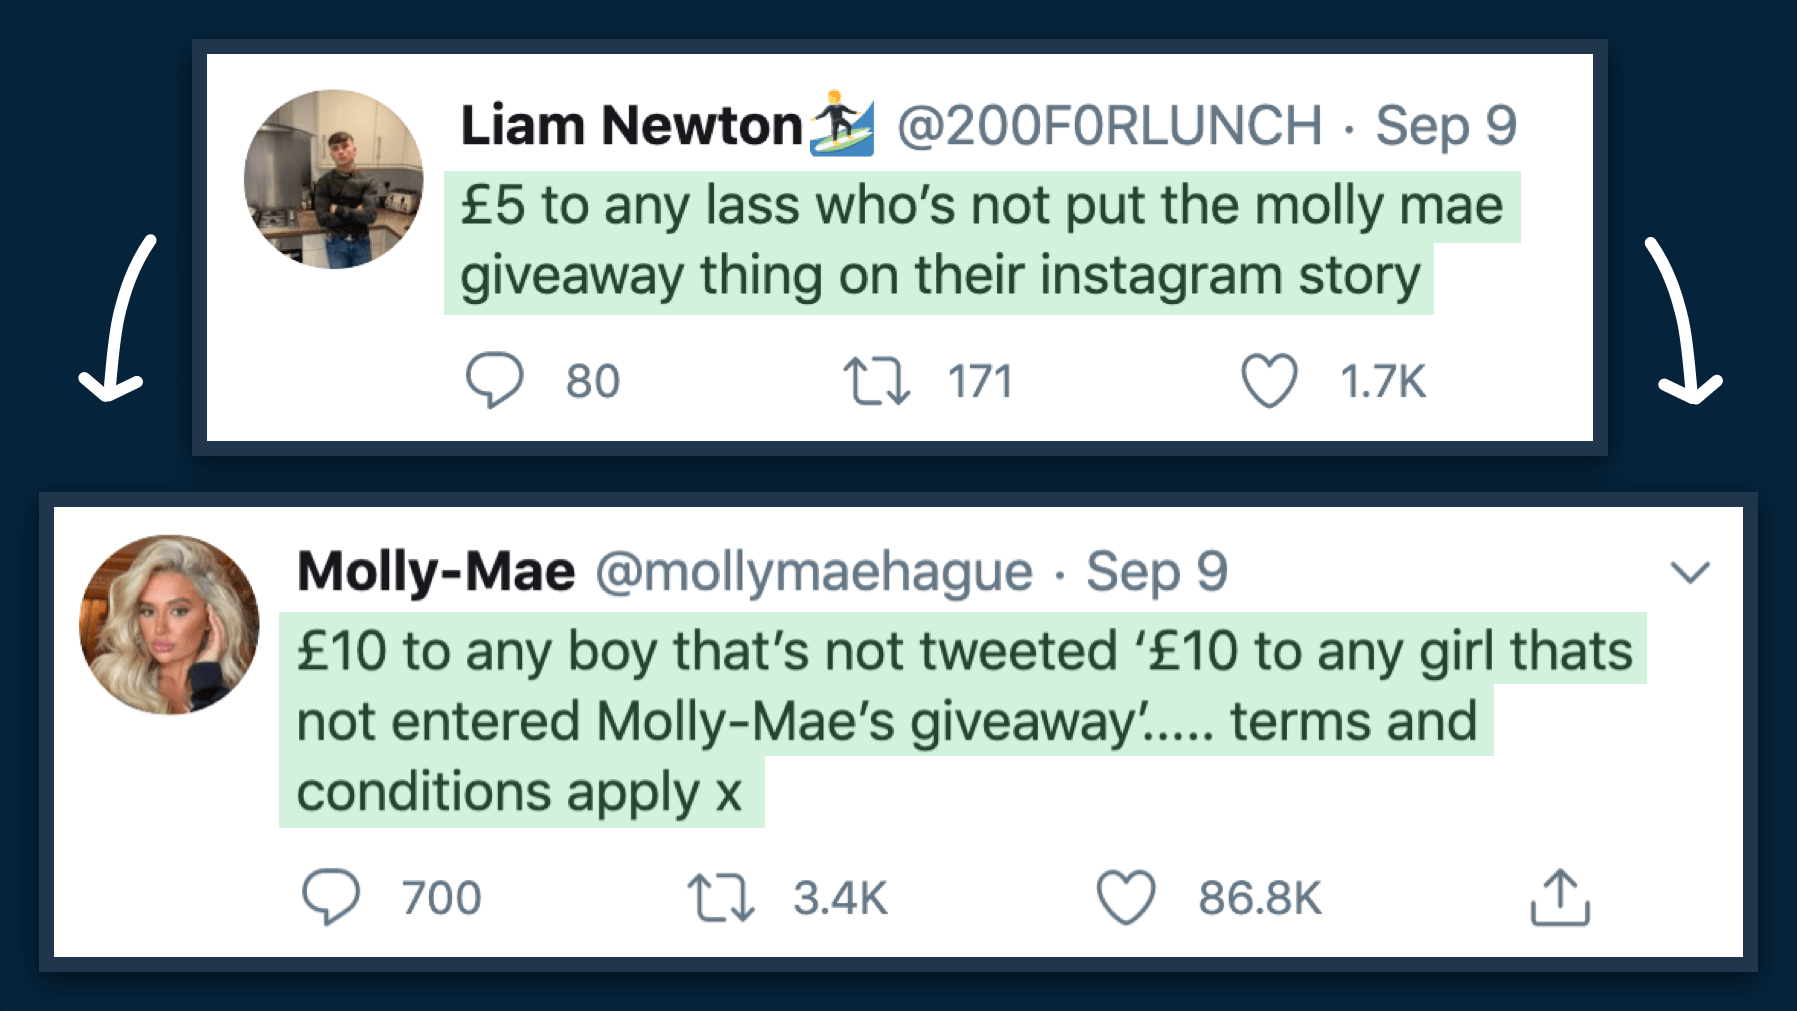 Molly-Mae's Twitter giveaway response